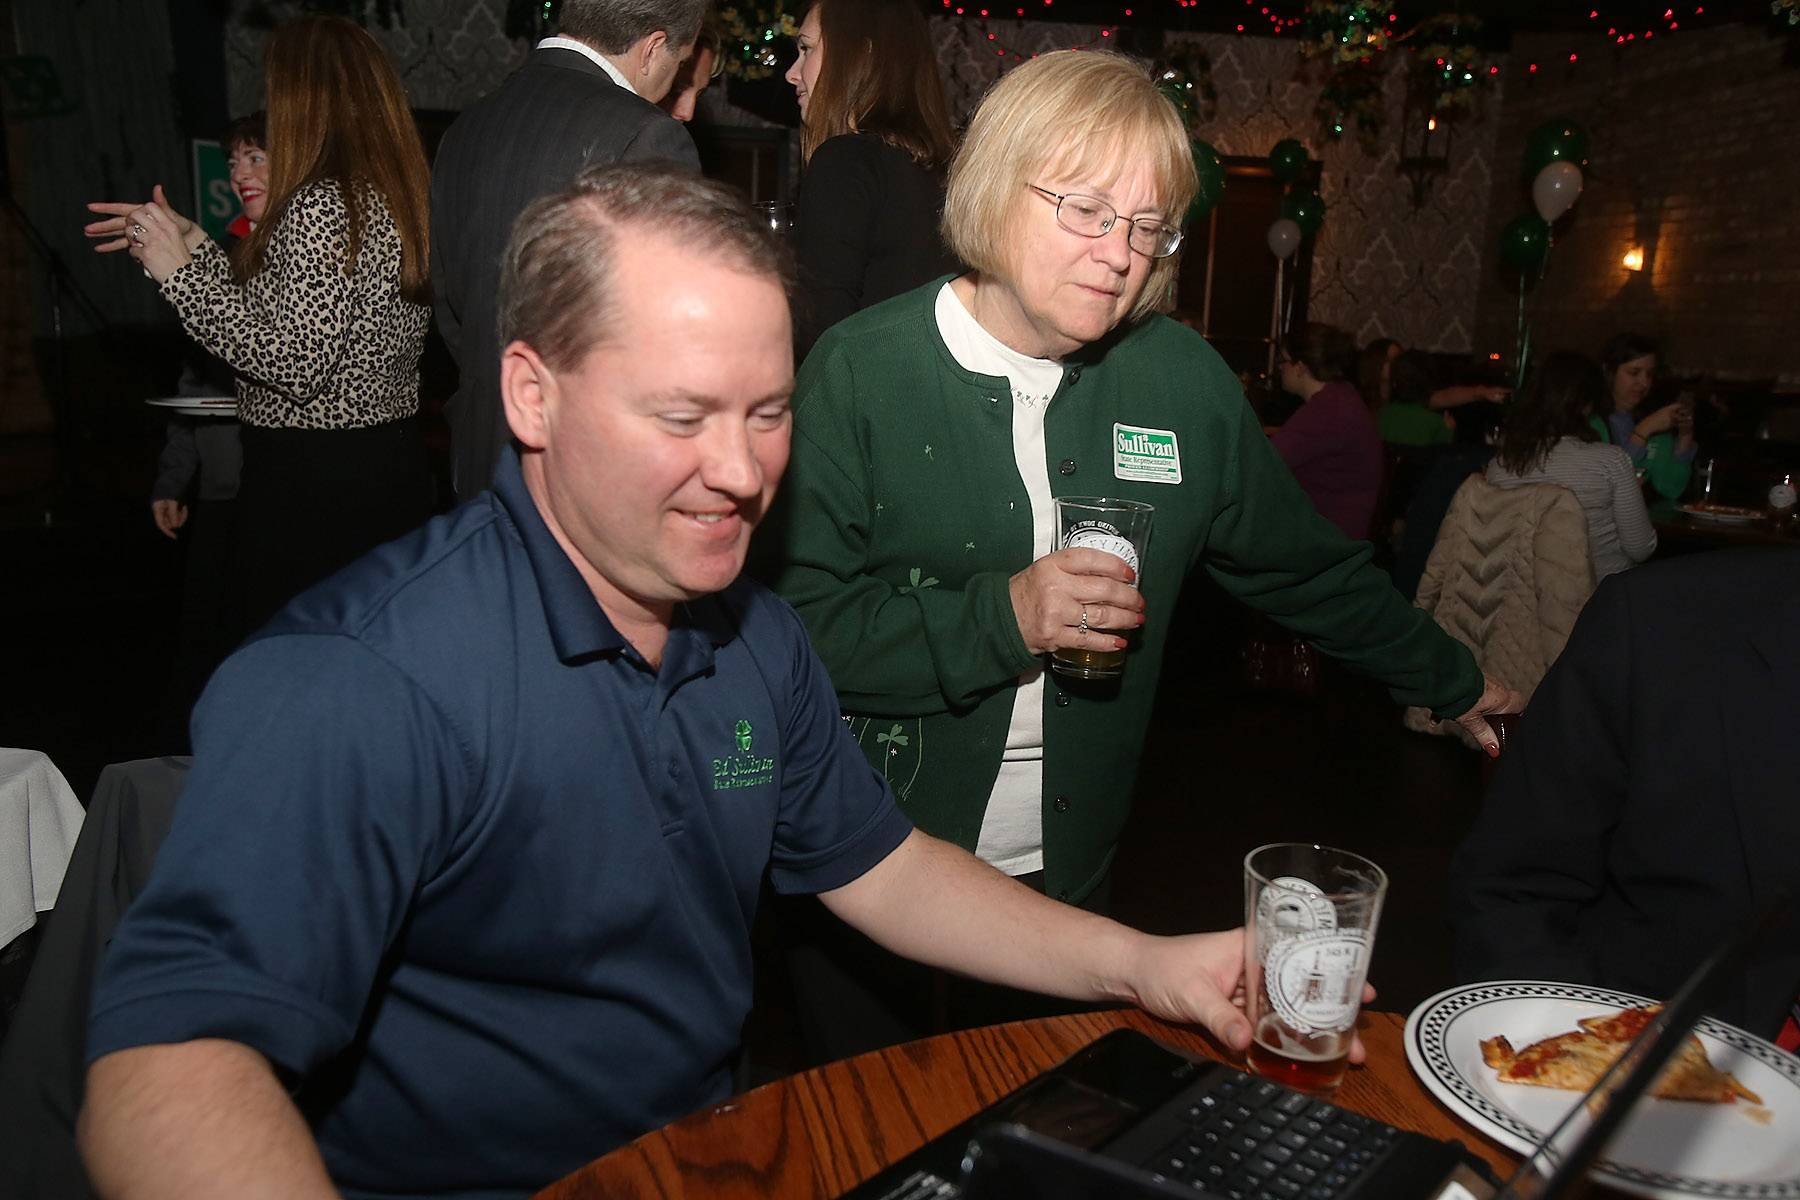 State Rep. Ed Sullivan Jr. and his mother, Barbara, check election results from the 51st House District primary Tuesday night at Mickey Finn's in Libertyville.